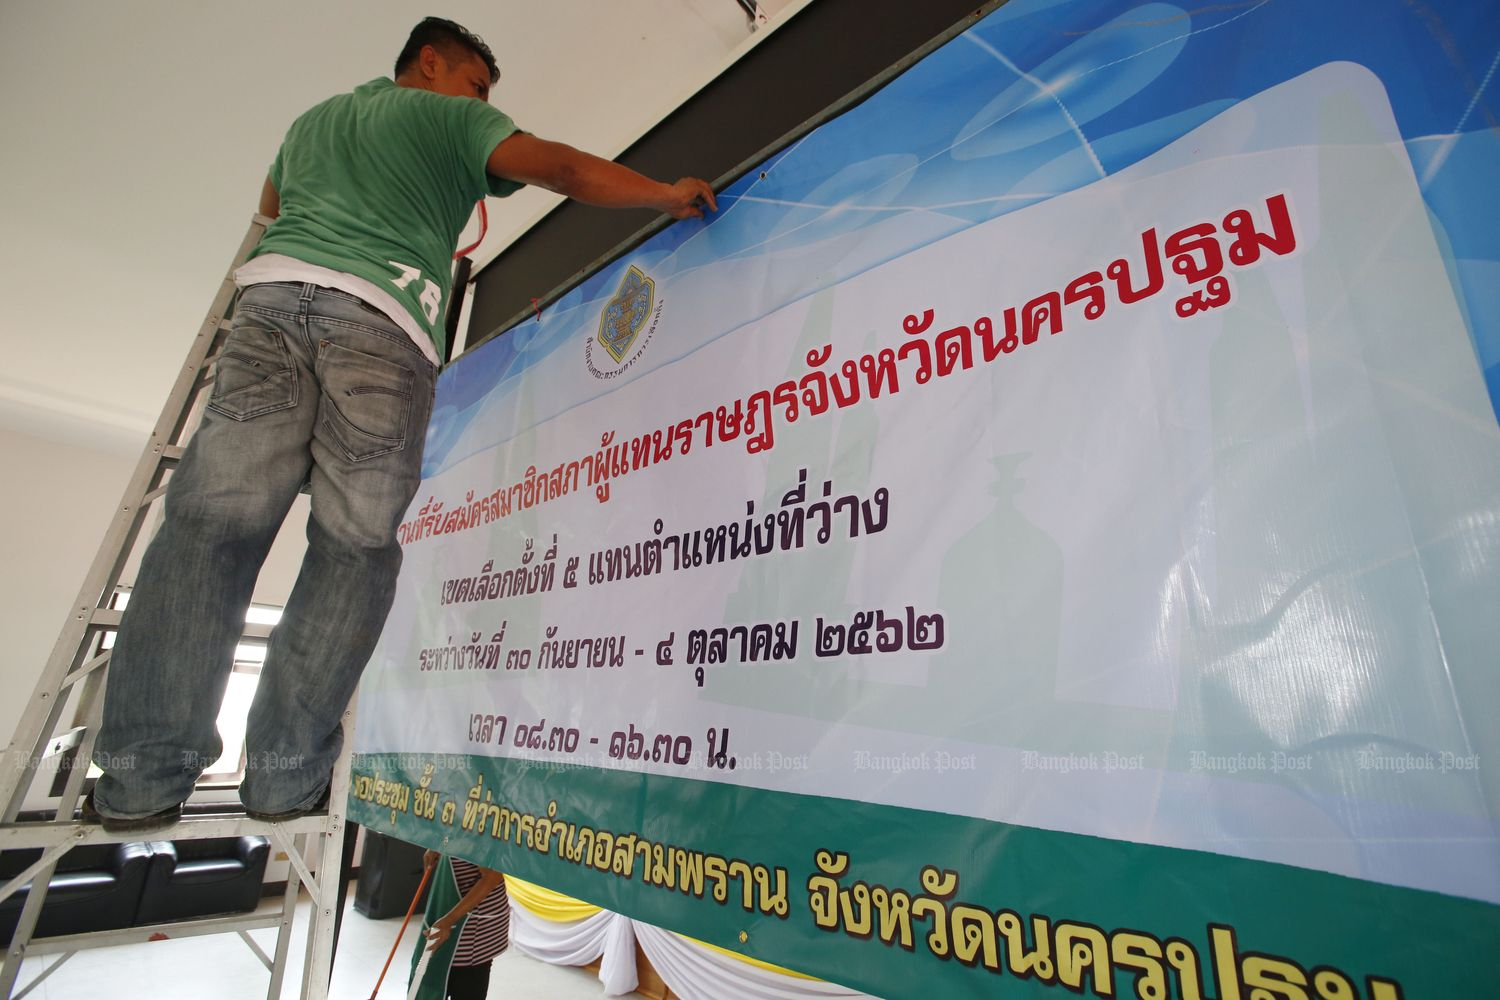 Workers arrange the Sam Phran district office in Nakhon Pathom as a venue for candidacy applications for the Nakhon Pathom Constituency 5 by-election to be held on Oct 23. Applications will be accepted to Friday. (photo by Pornprom Sattrabhaya)